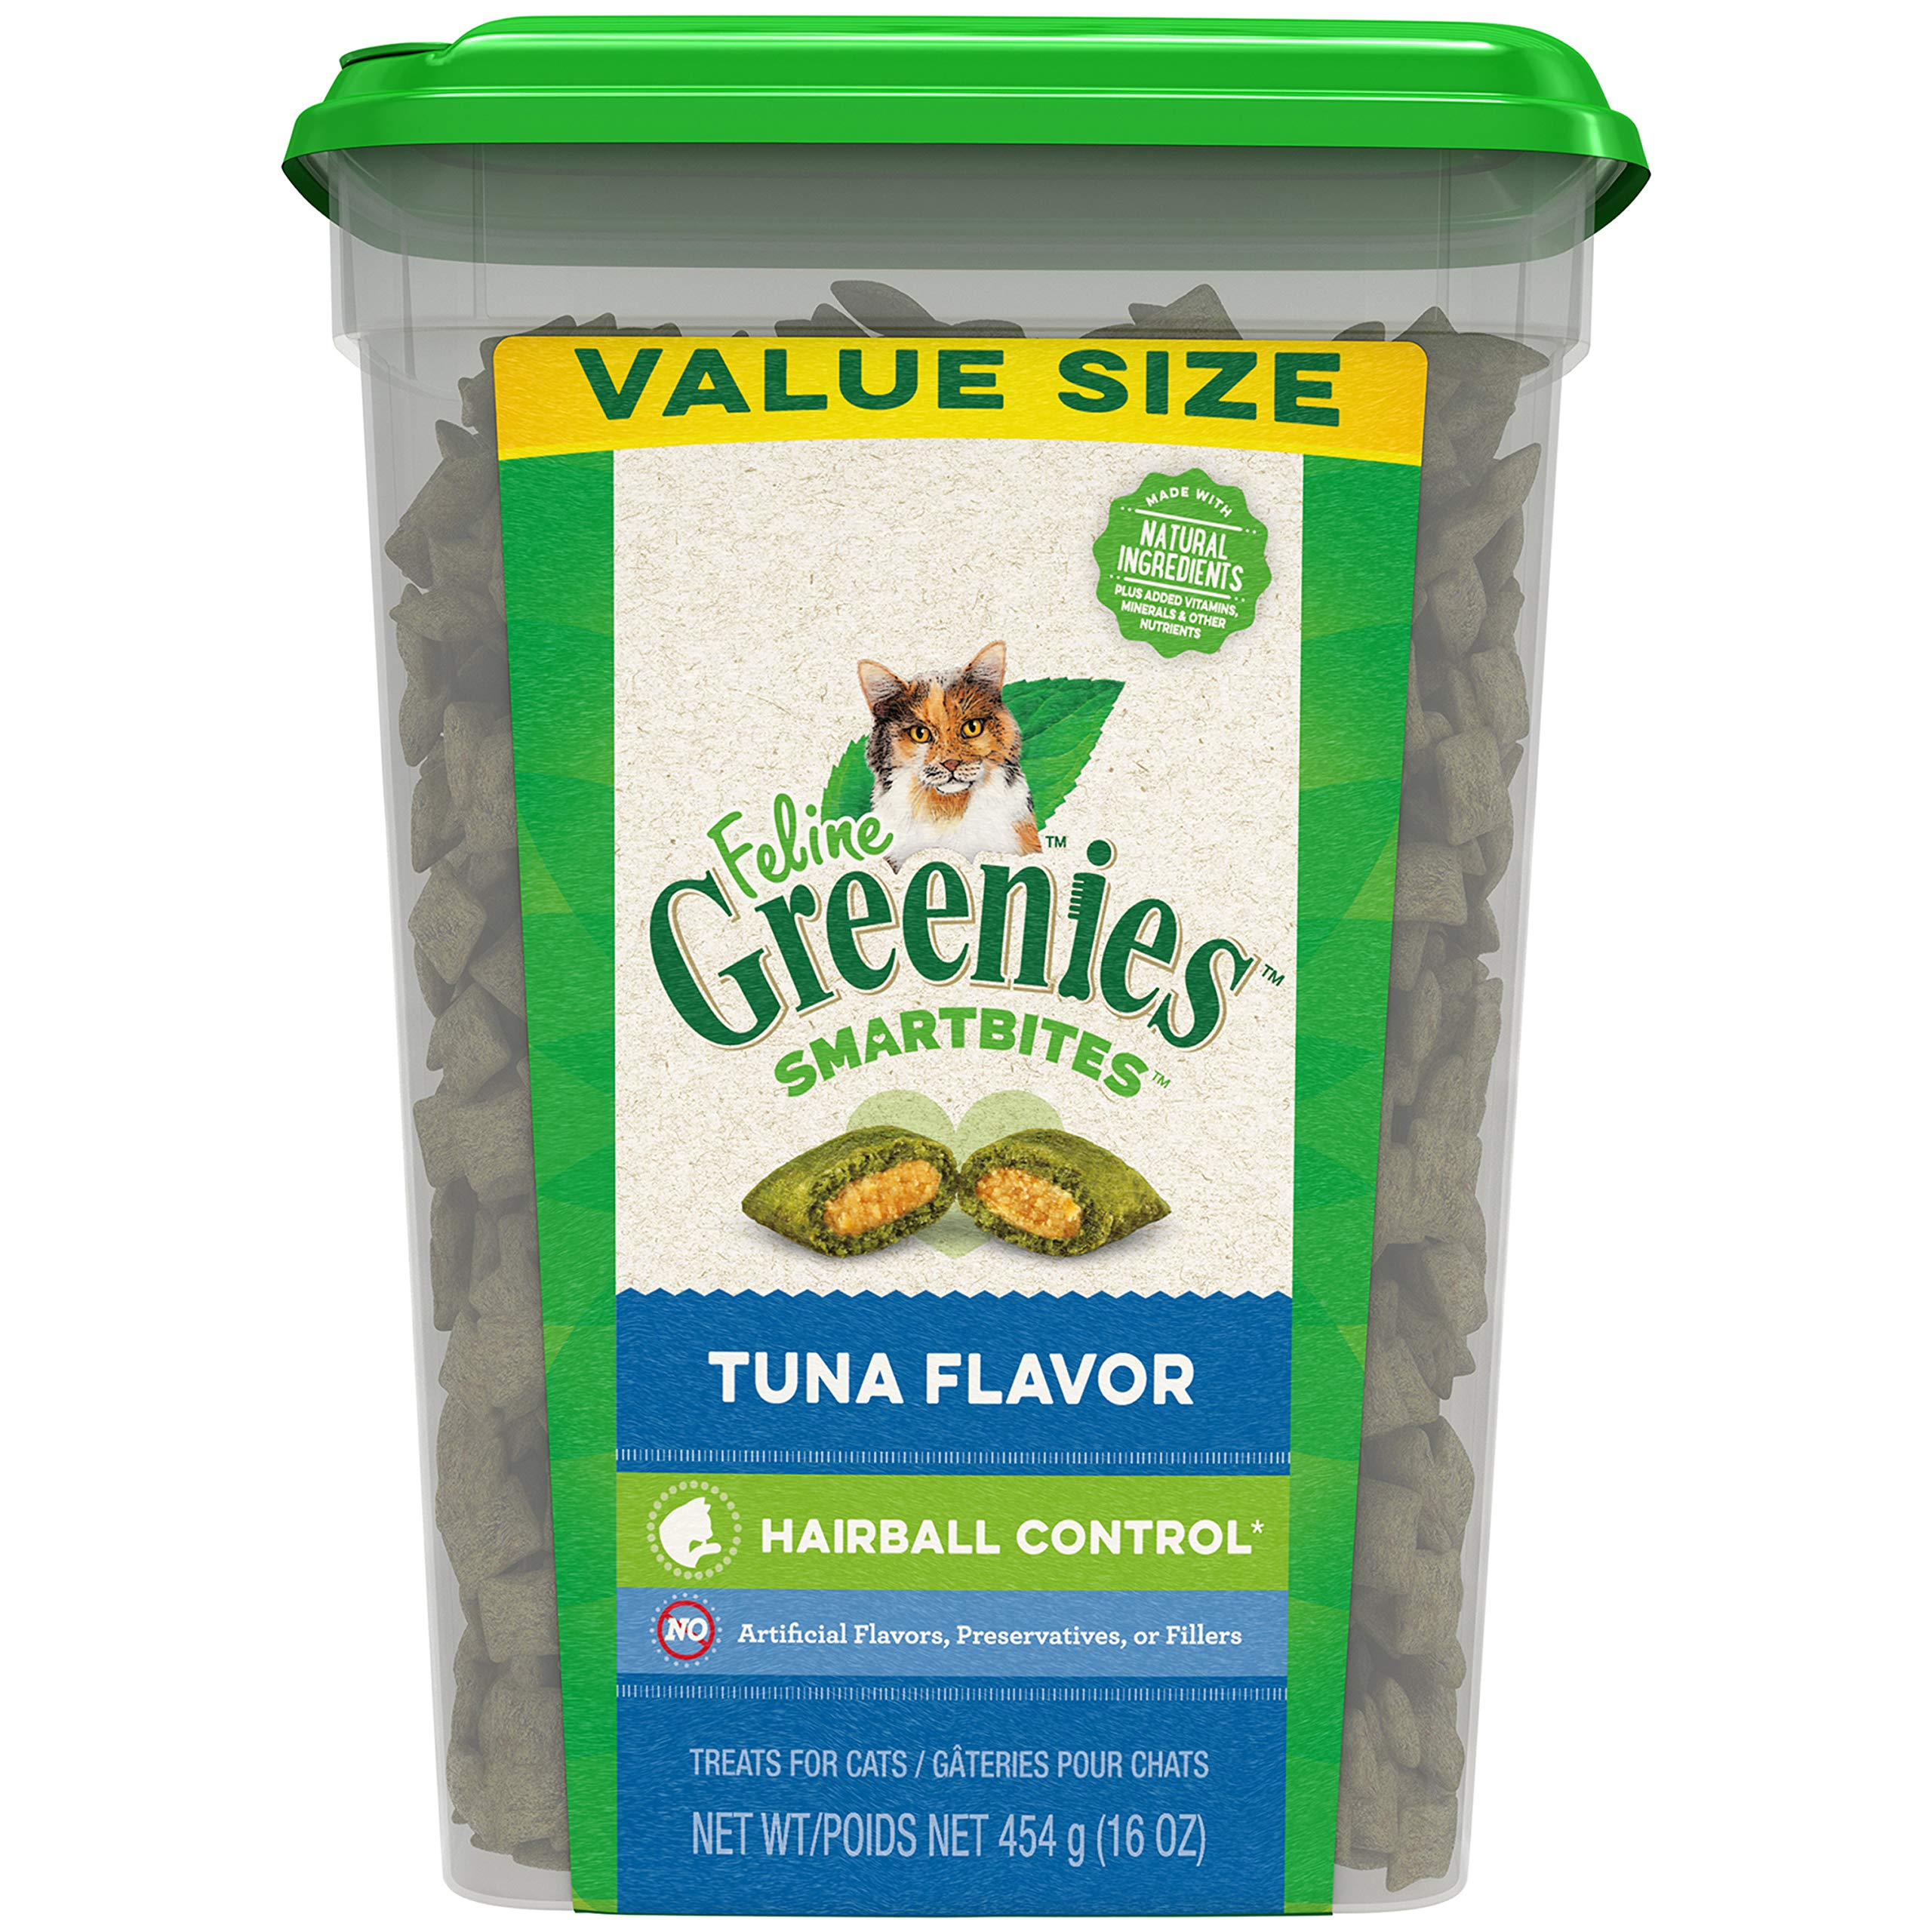 Greenies Feline SMARTBITES Hairball Control Natural Treats for Cats, Tuna Flavor, 16 oz. Tub by Greenies